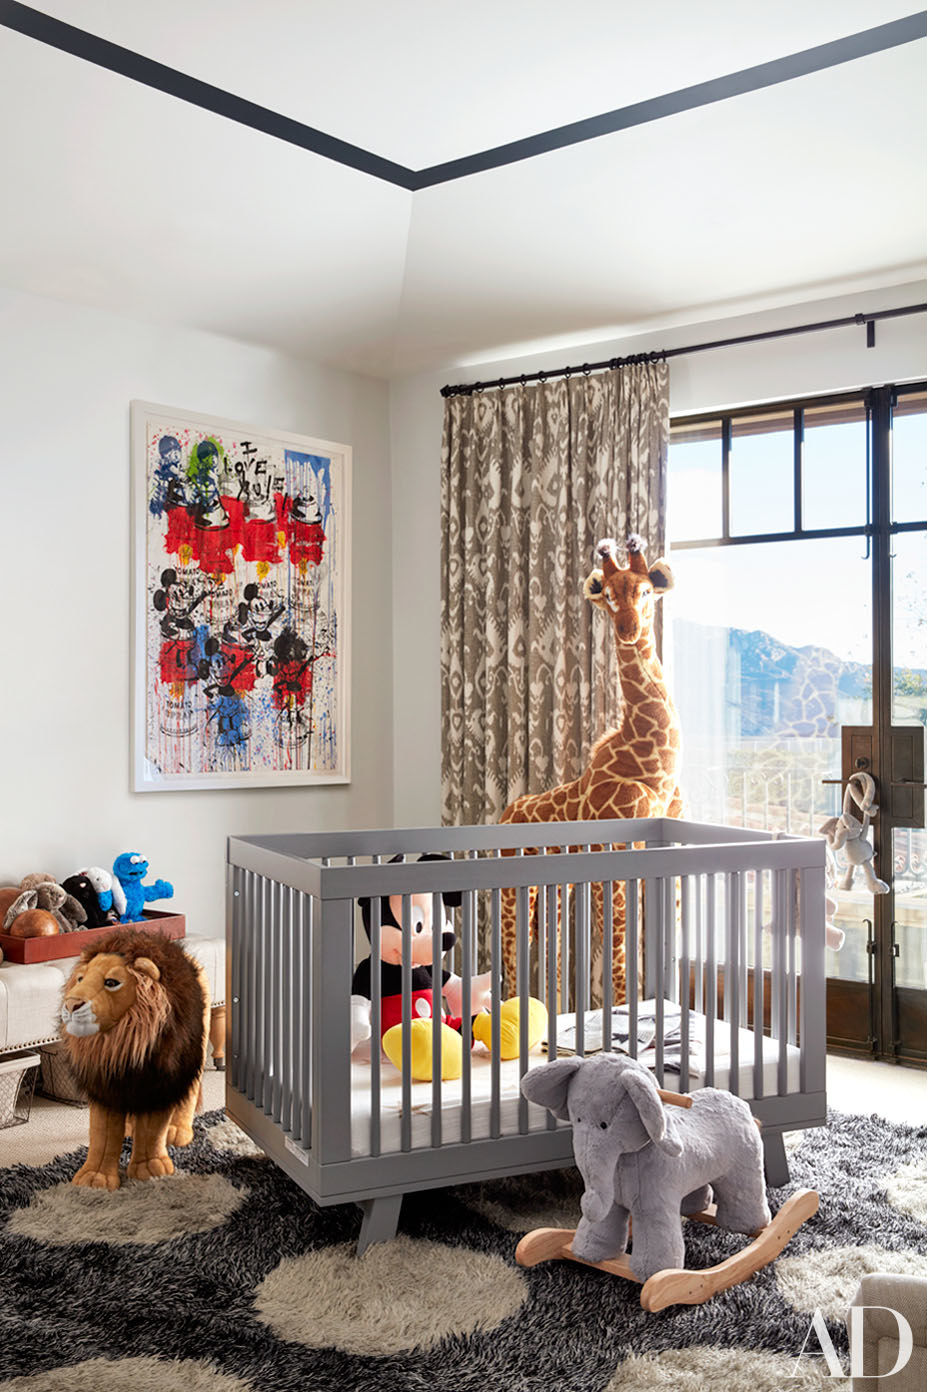 Kourtney's Baby Room